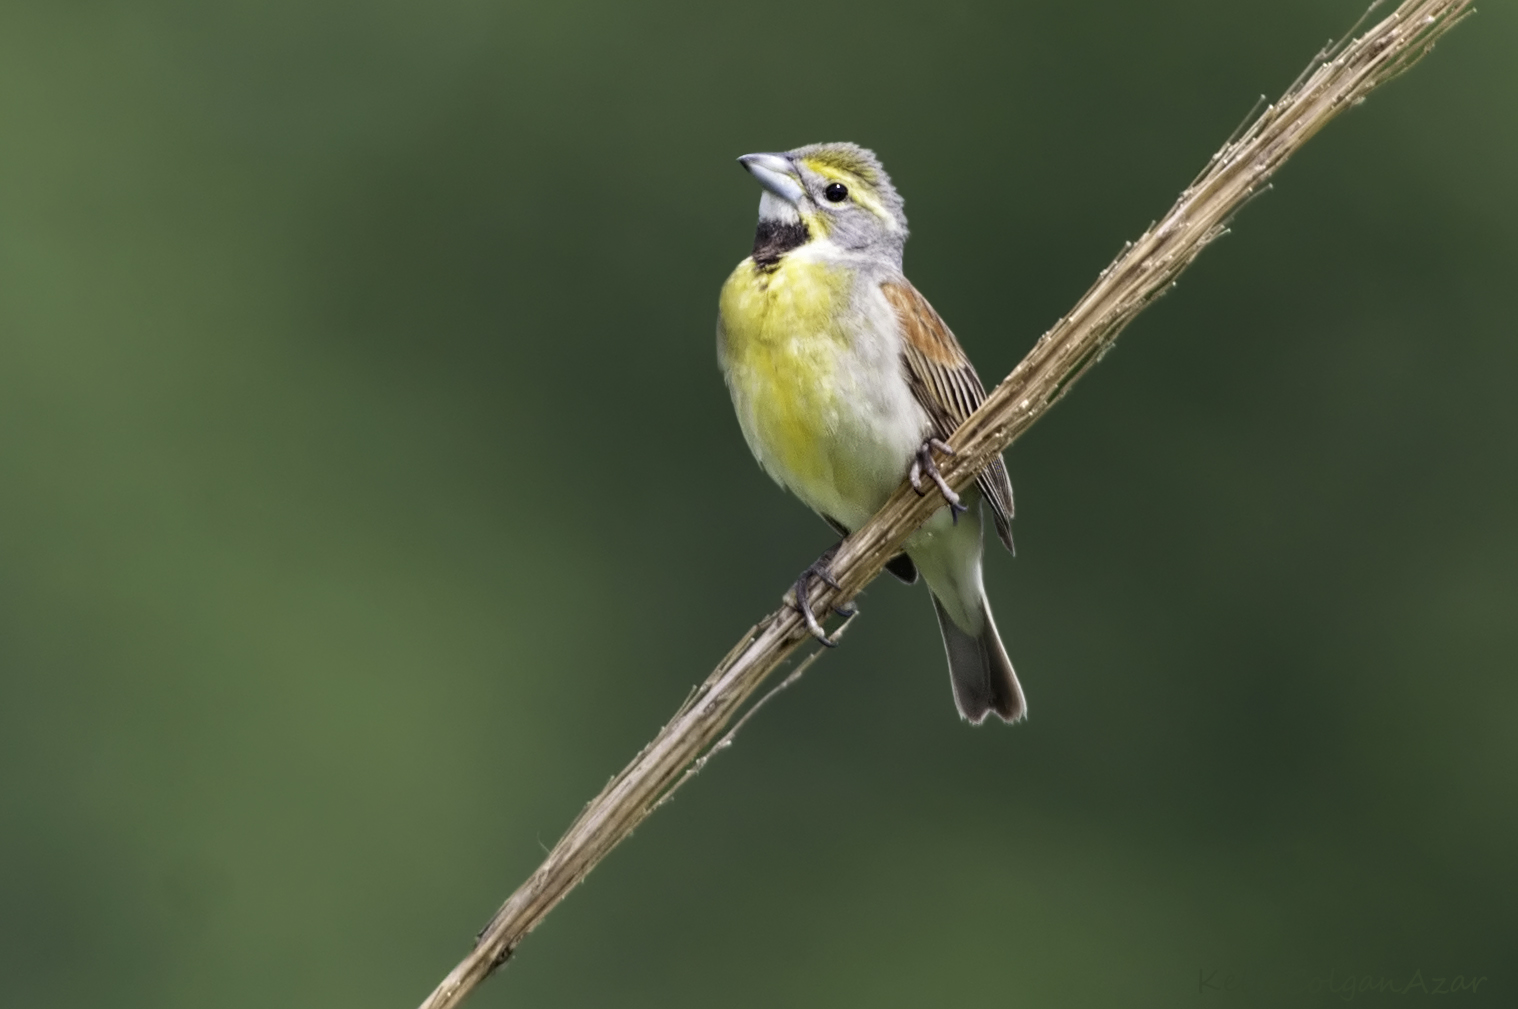 """- Dickcissel (Spiza americana)Dickcissels live in open areas such as prairies, meadows, and agricultural fields.They eat seeds from the grasses and crops around them and insects such as grasshoppers and beetles. Dickcissels have a wingspan of about 9.8 in. and weigh 0.8-1 oz. Their song say """"dick, dick, ciss, ciss, ciss."""" They are protected on the US Migratory Bird list.Photo Credits: Kelly Colgan Azar"""